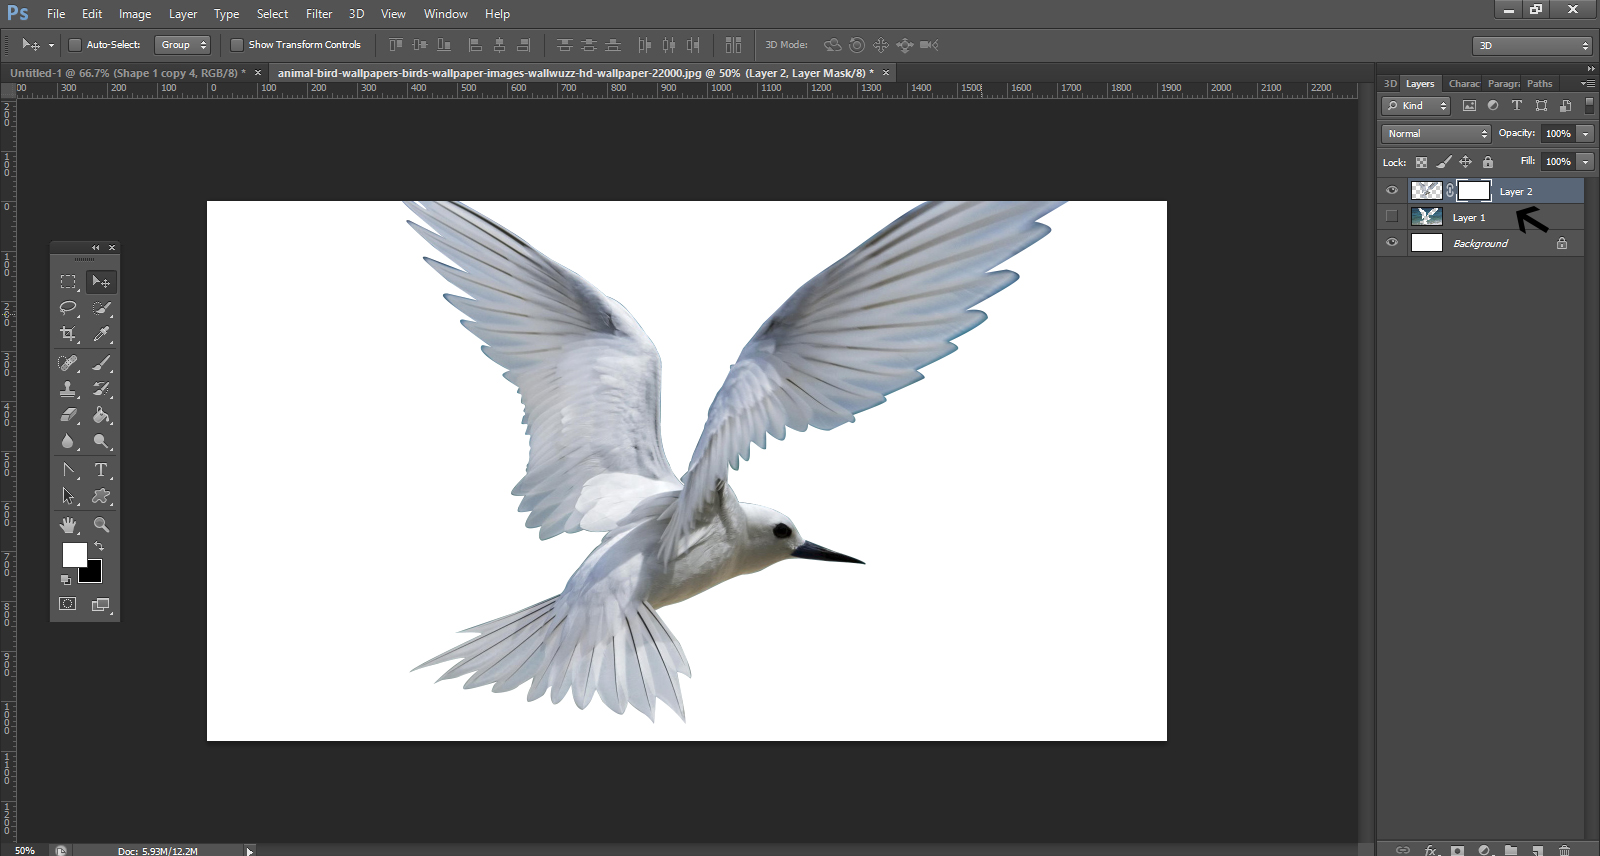 How To Remove Background From An Image In Photoshop7